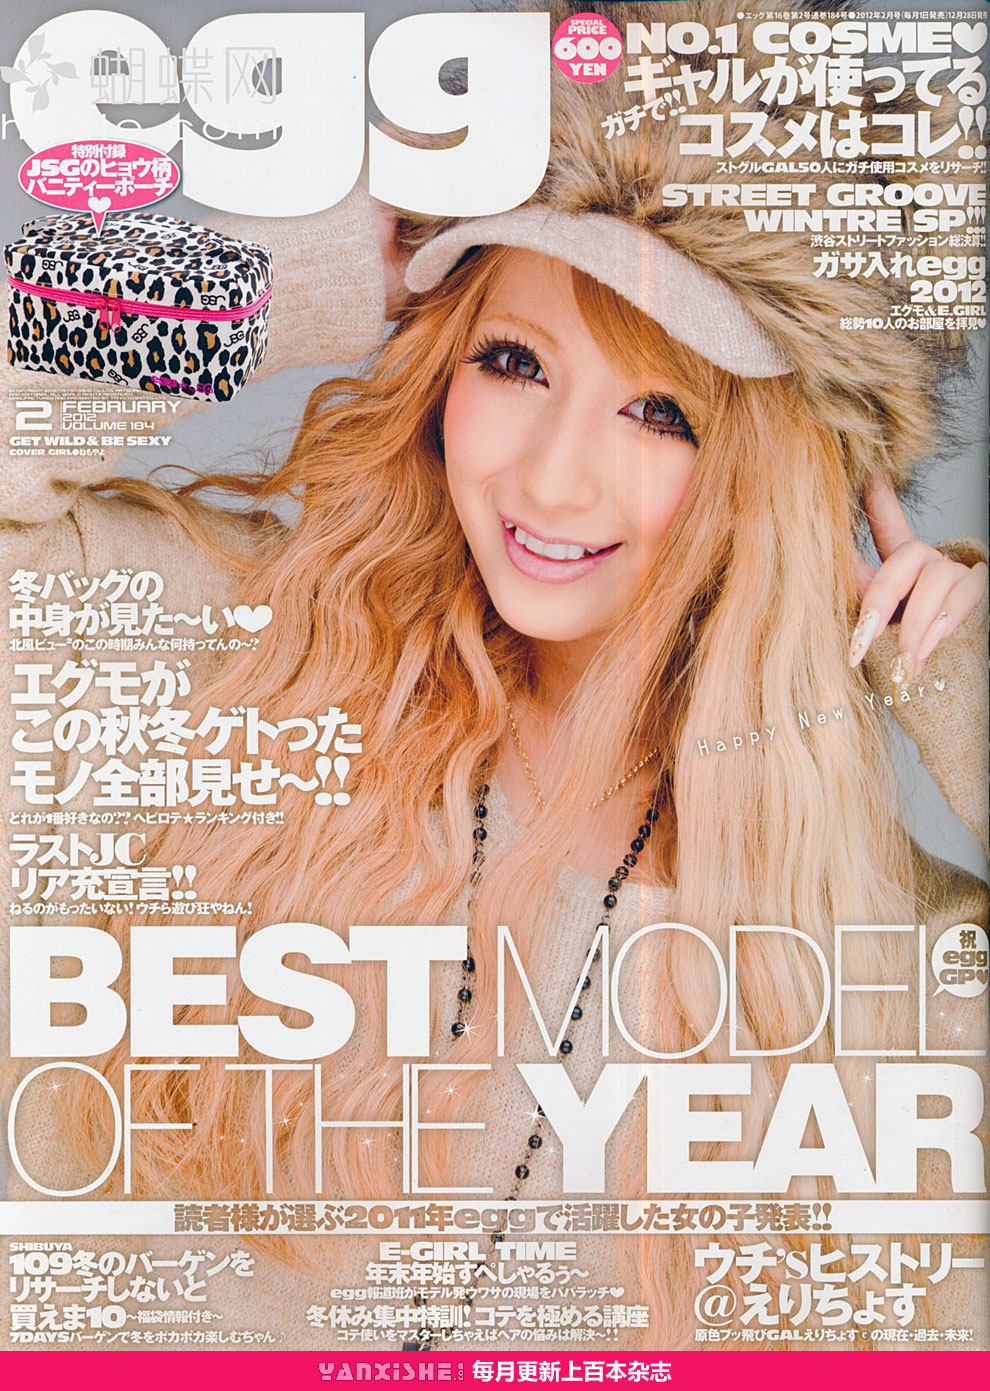 egg magazine scans february 2012